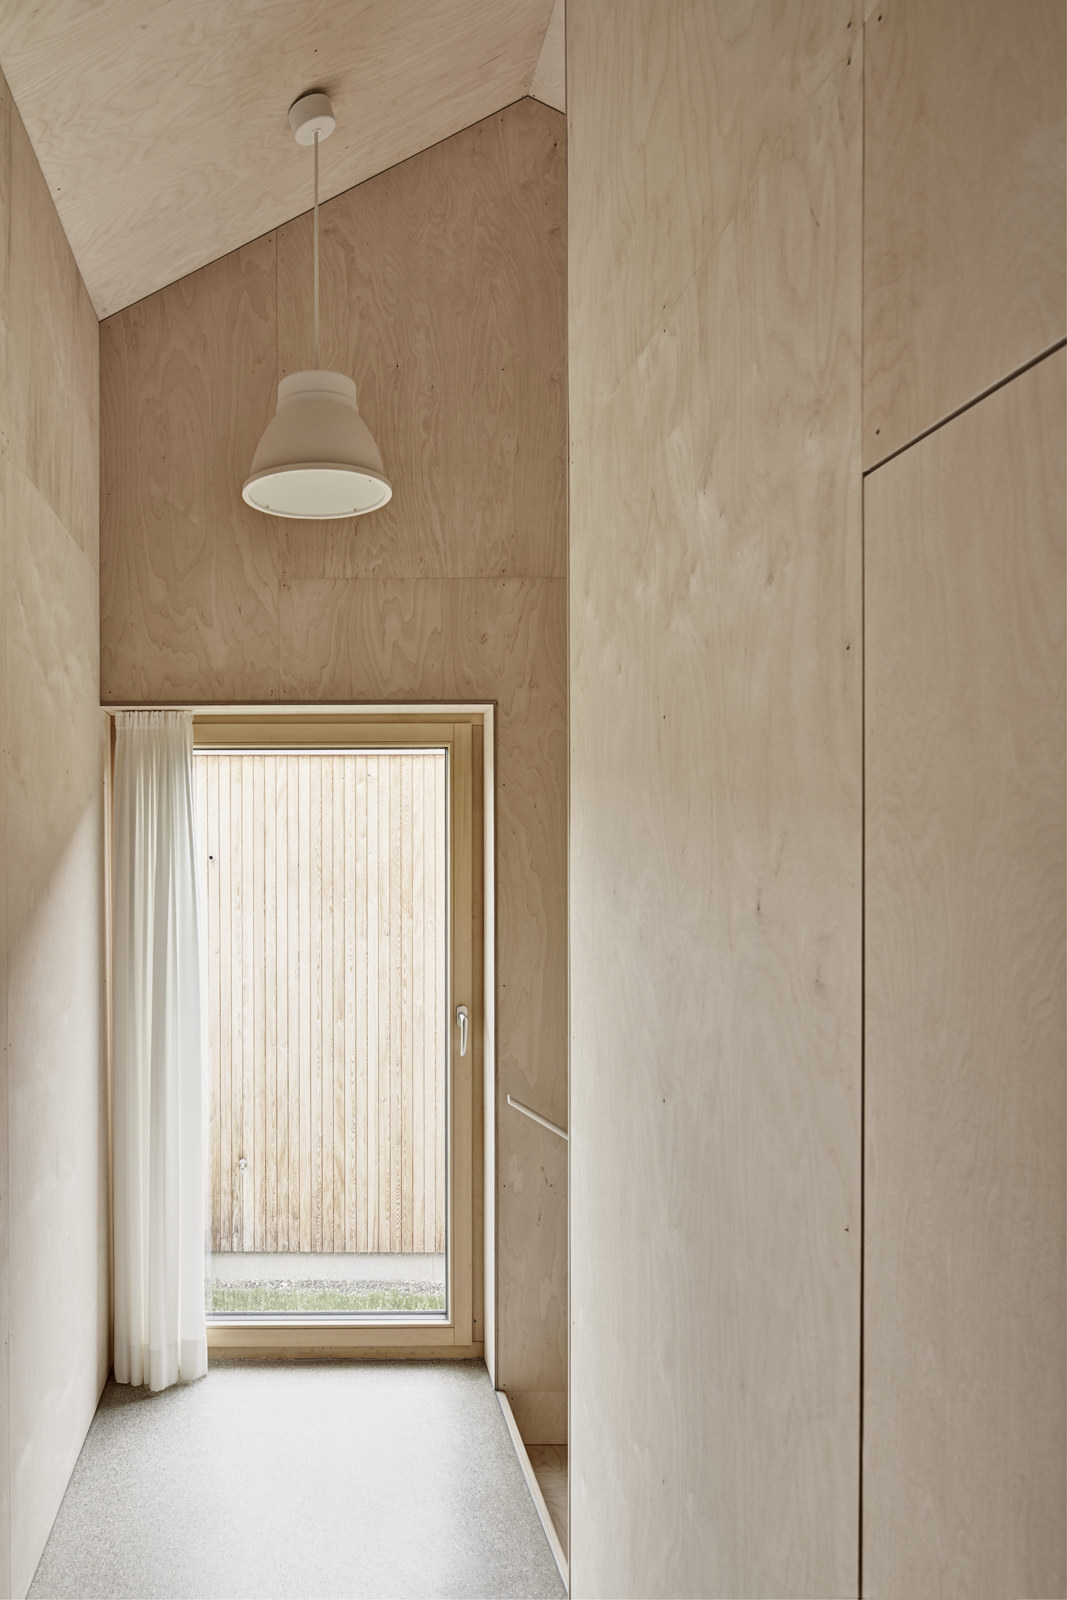 Feurstein House by Innauer‐Matt Architekten